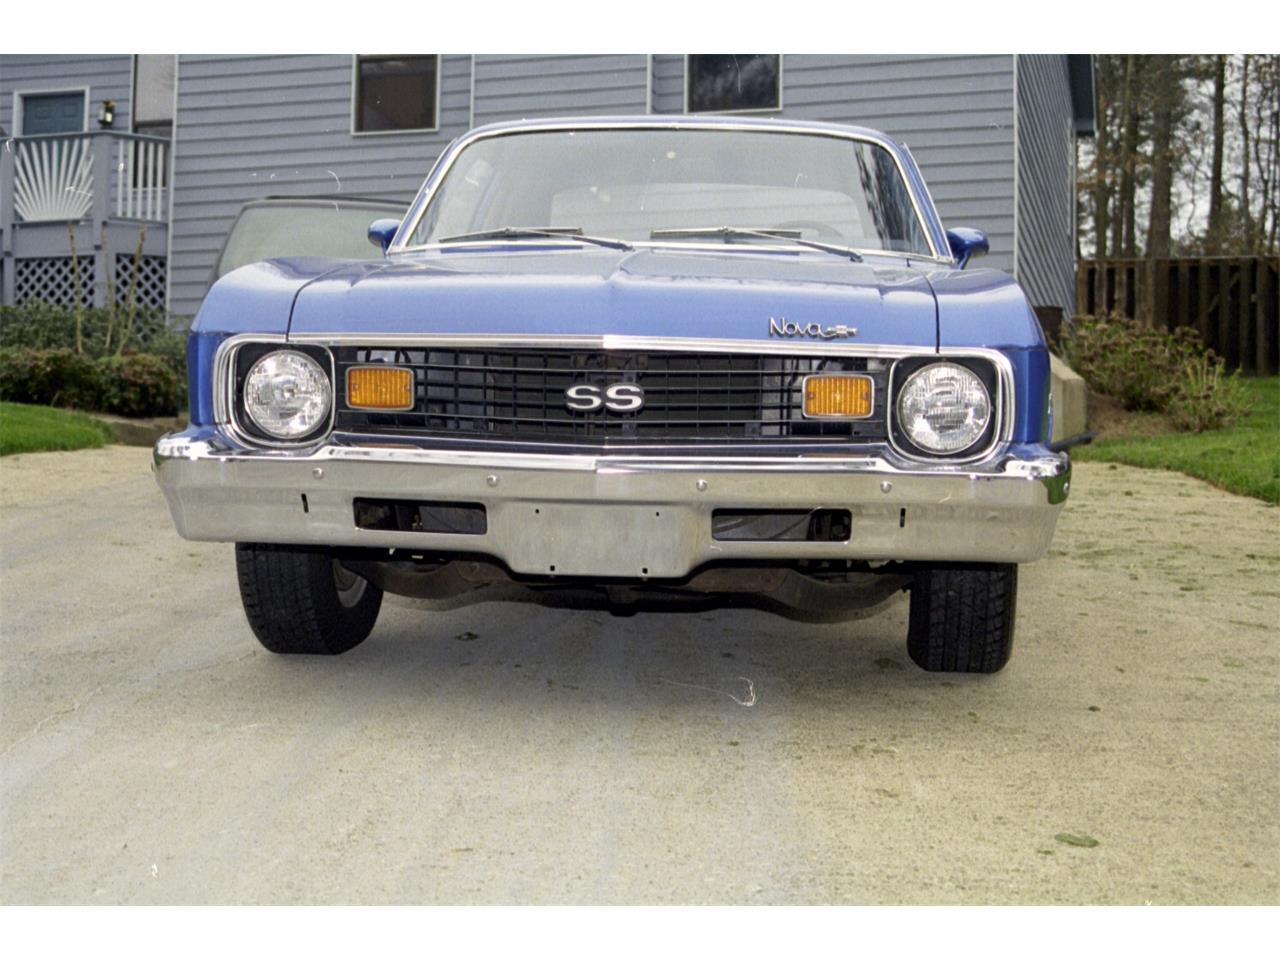 Large Picture of Classic 1973 Chevrolet Nova SS  located in Roswell Georgia - $17,000.00 Offered by a Private Seller - LCH6